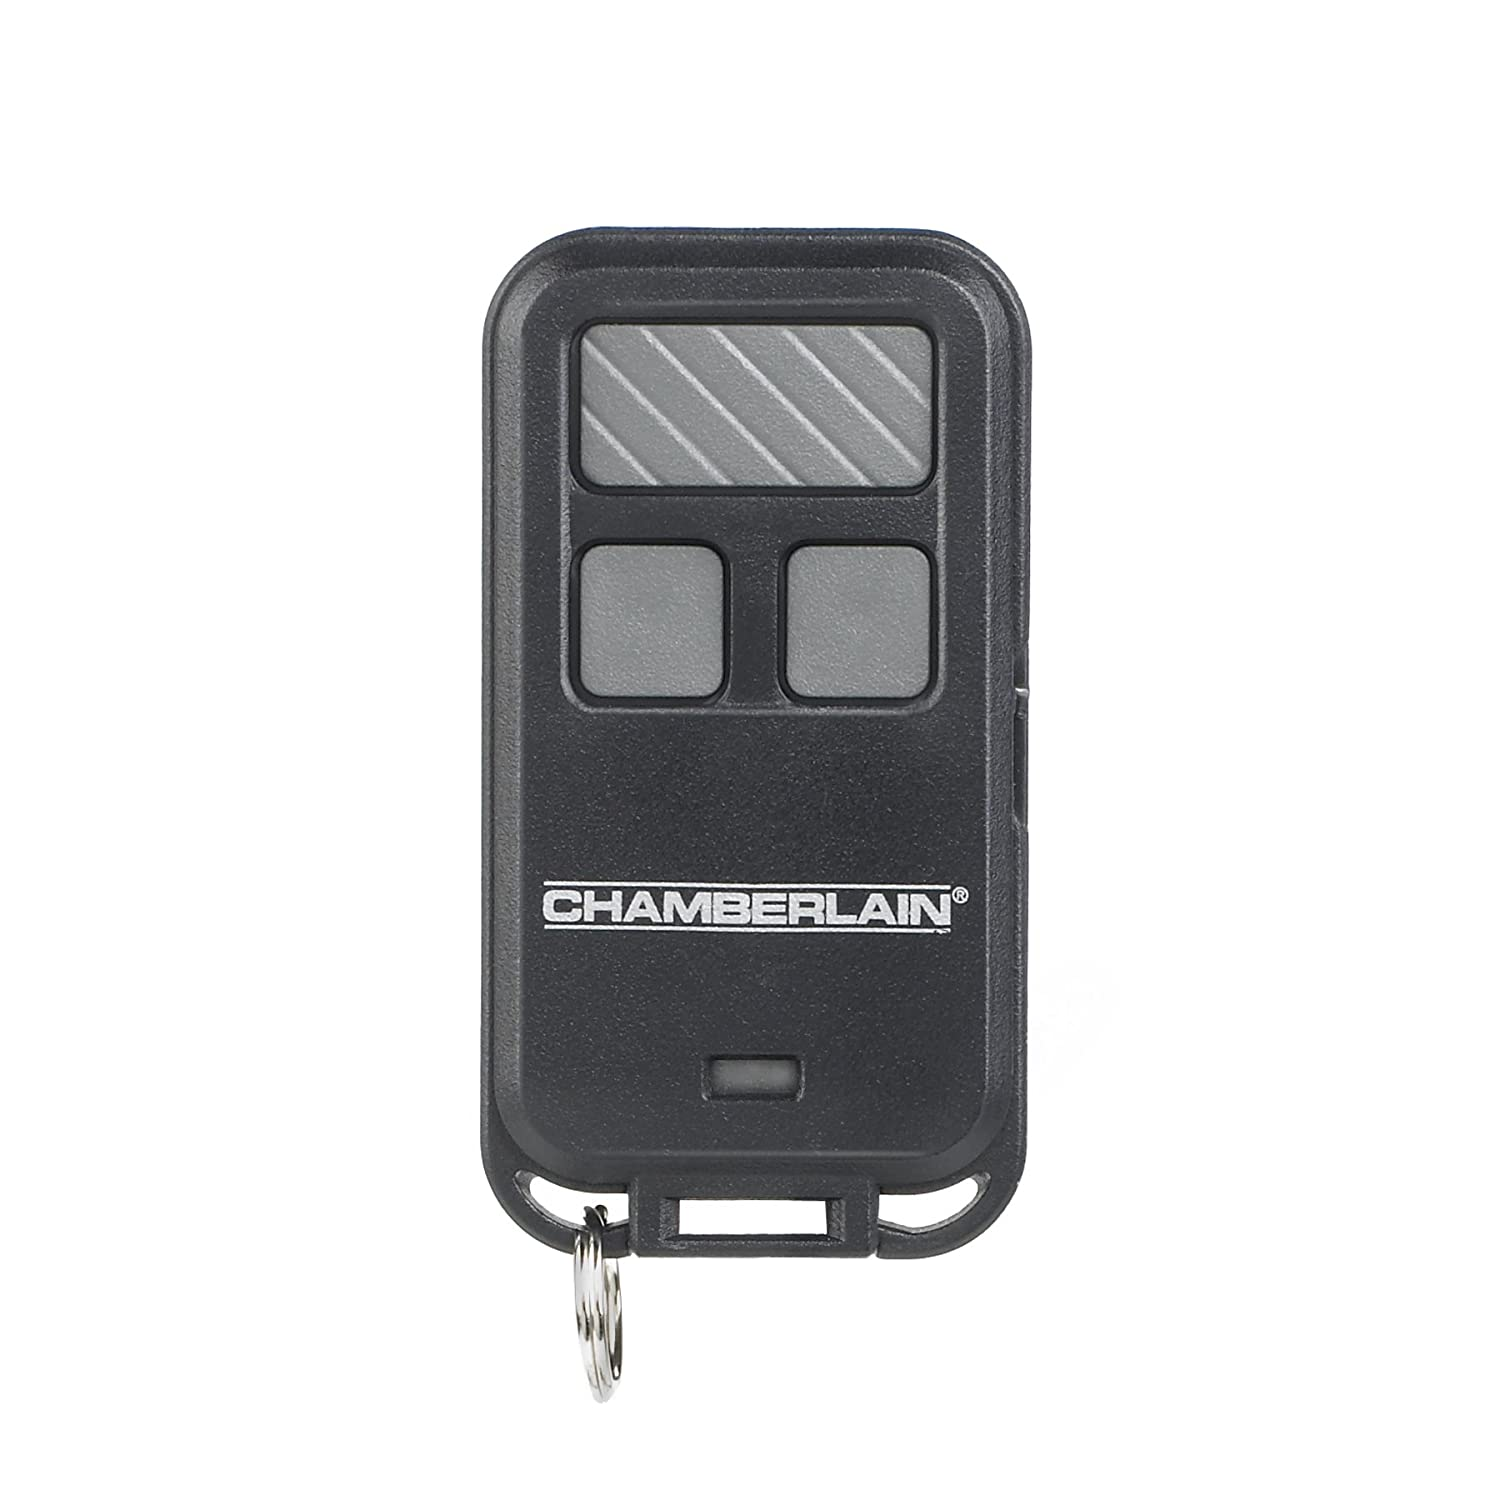 Top 10 Best Garage Door Opener Universal Remote Controls. Kohler Shower Door Parts. Chamberlain Garage Door Customer Service Phone Number. 3 Panel Patio Door. Door Mount Pull Up Bar. Residential Steel Security Doors. Sears Craftsman Garage Door Opener Manual. Double Glazed Kitchen Doors. Detex Door Alarm